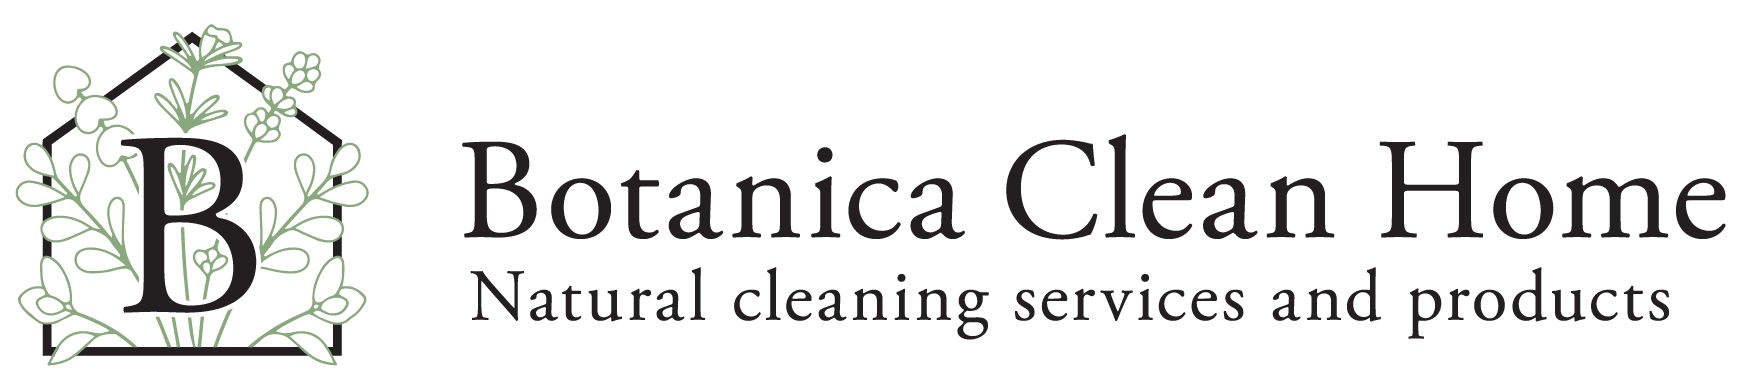 Botanica Clean Home - Natural Cleaning Services and Products